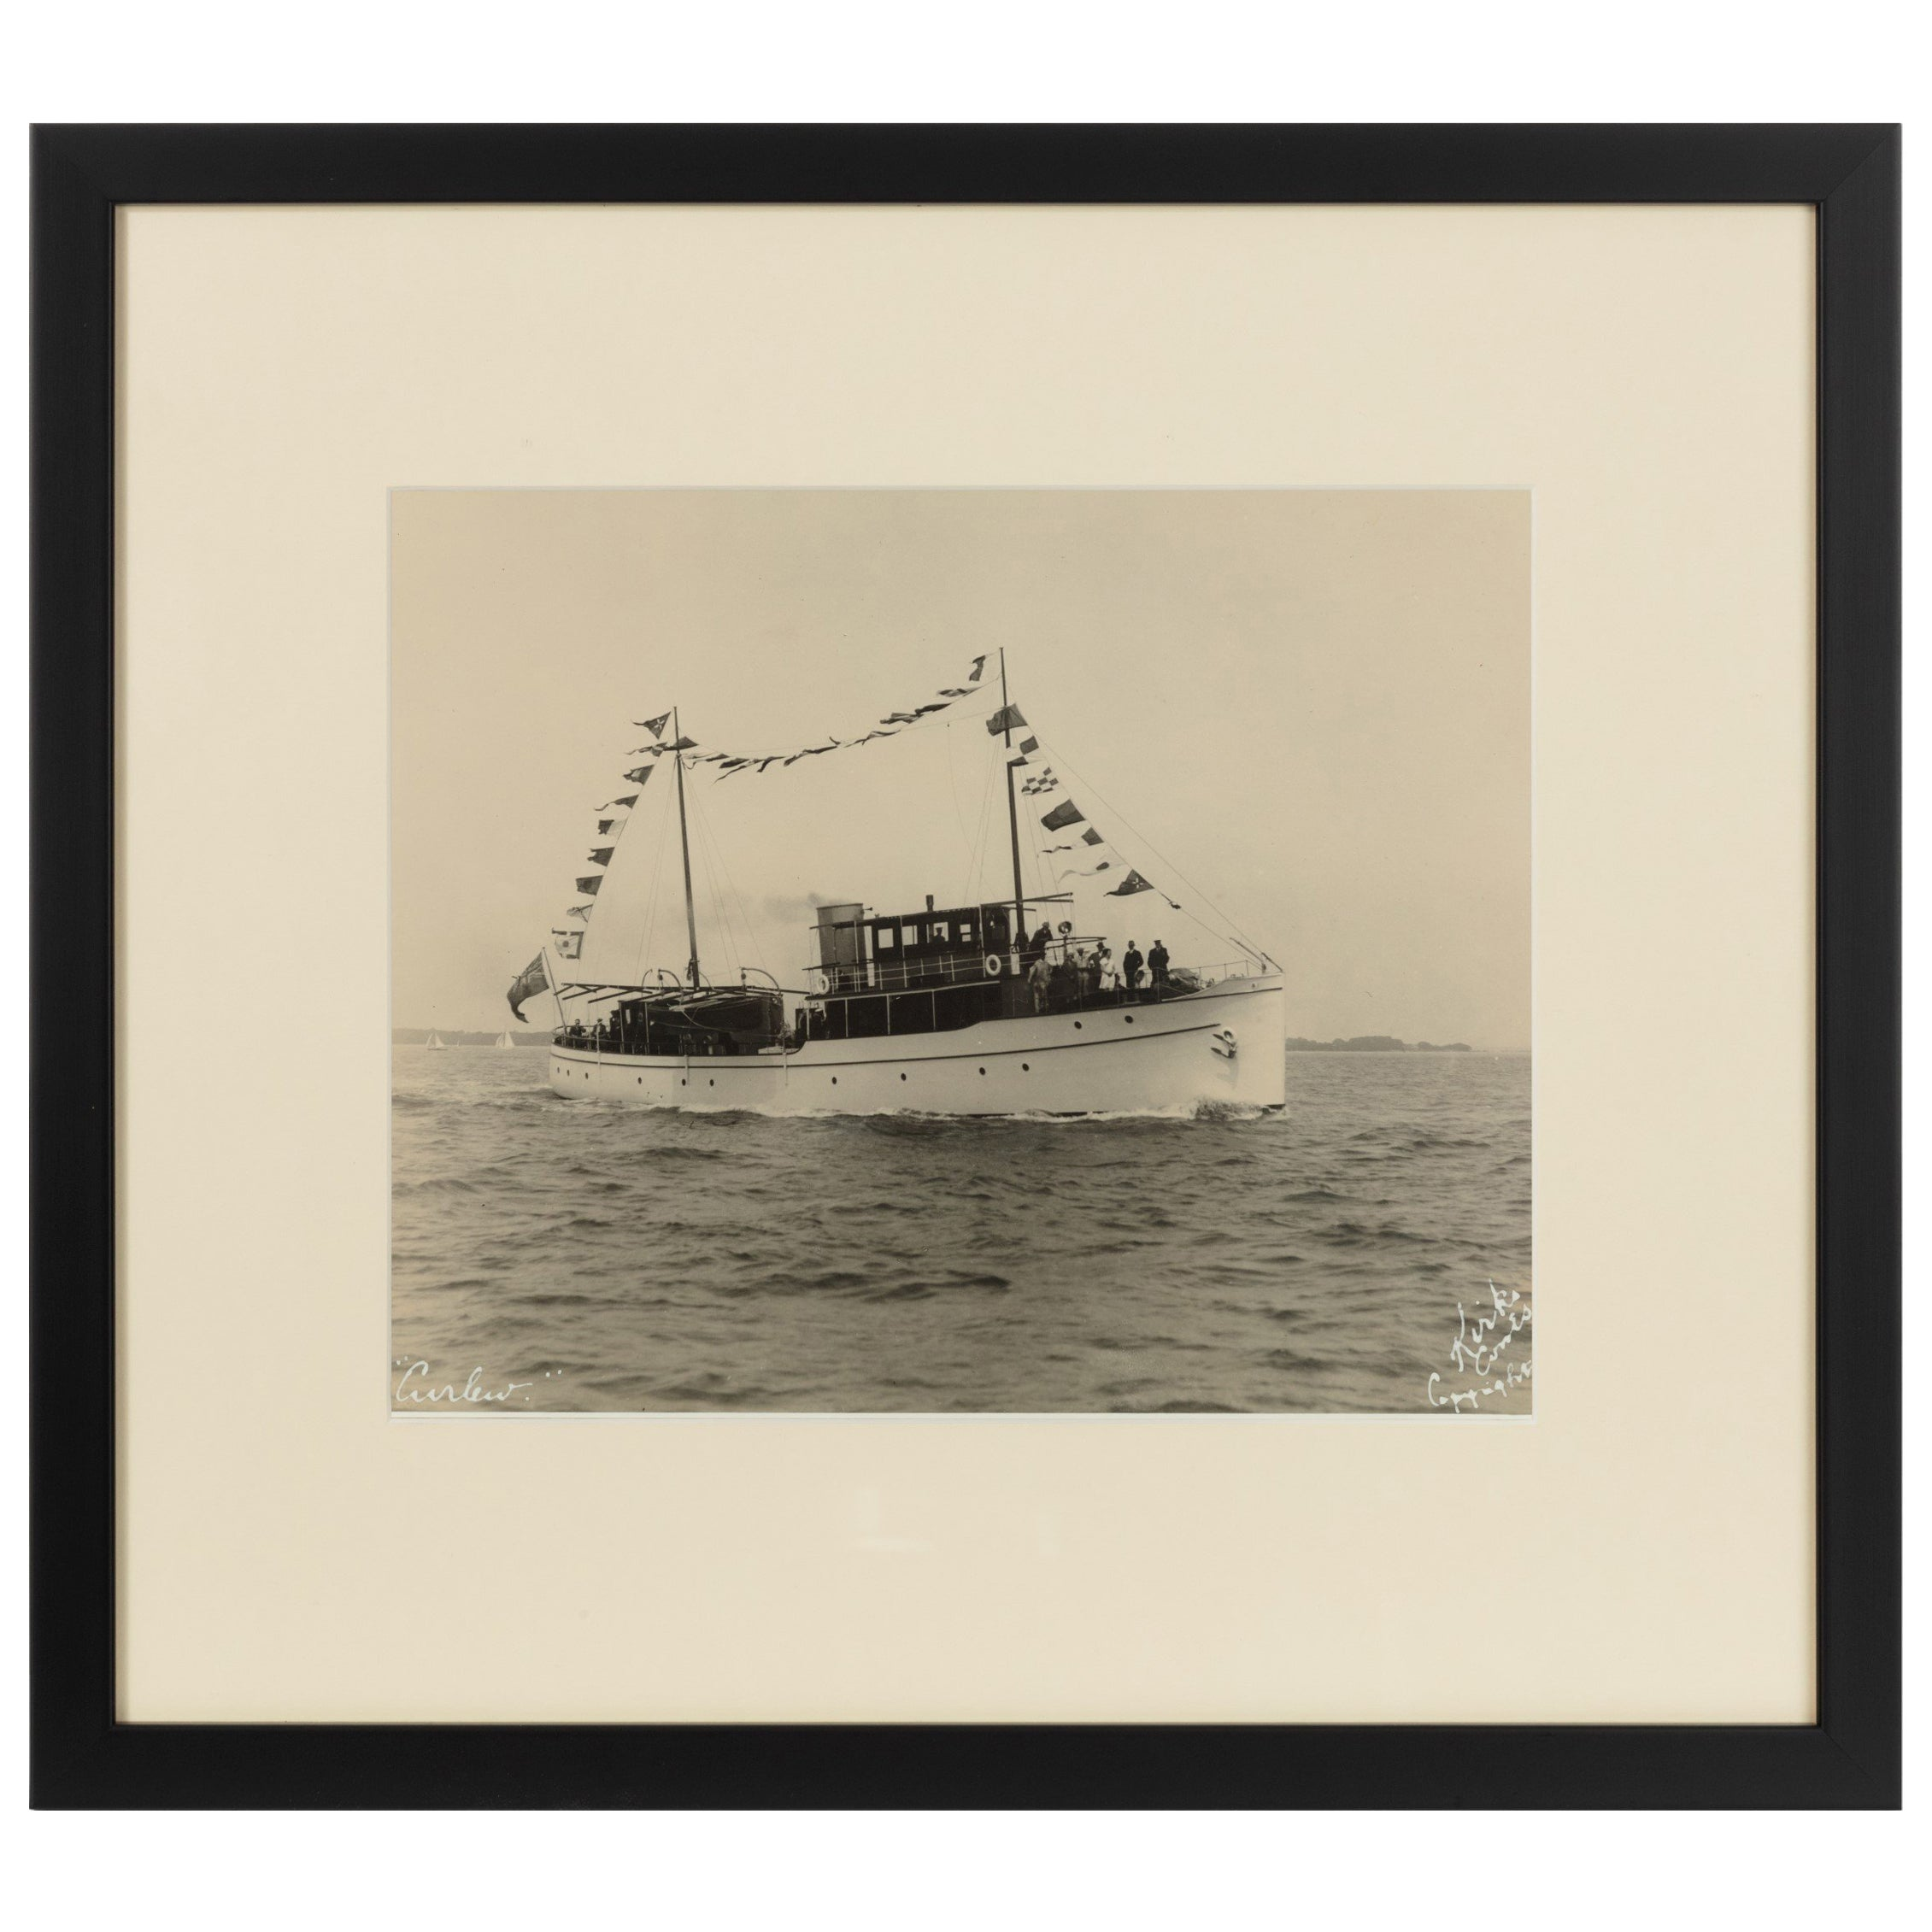 Early Silver Gelatin Photographic Print of the Sailing Yacht Curlew